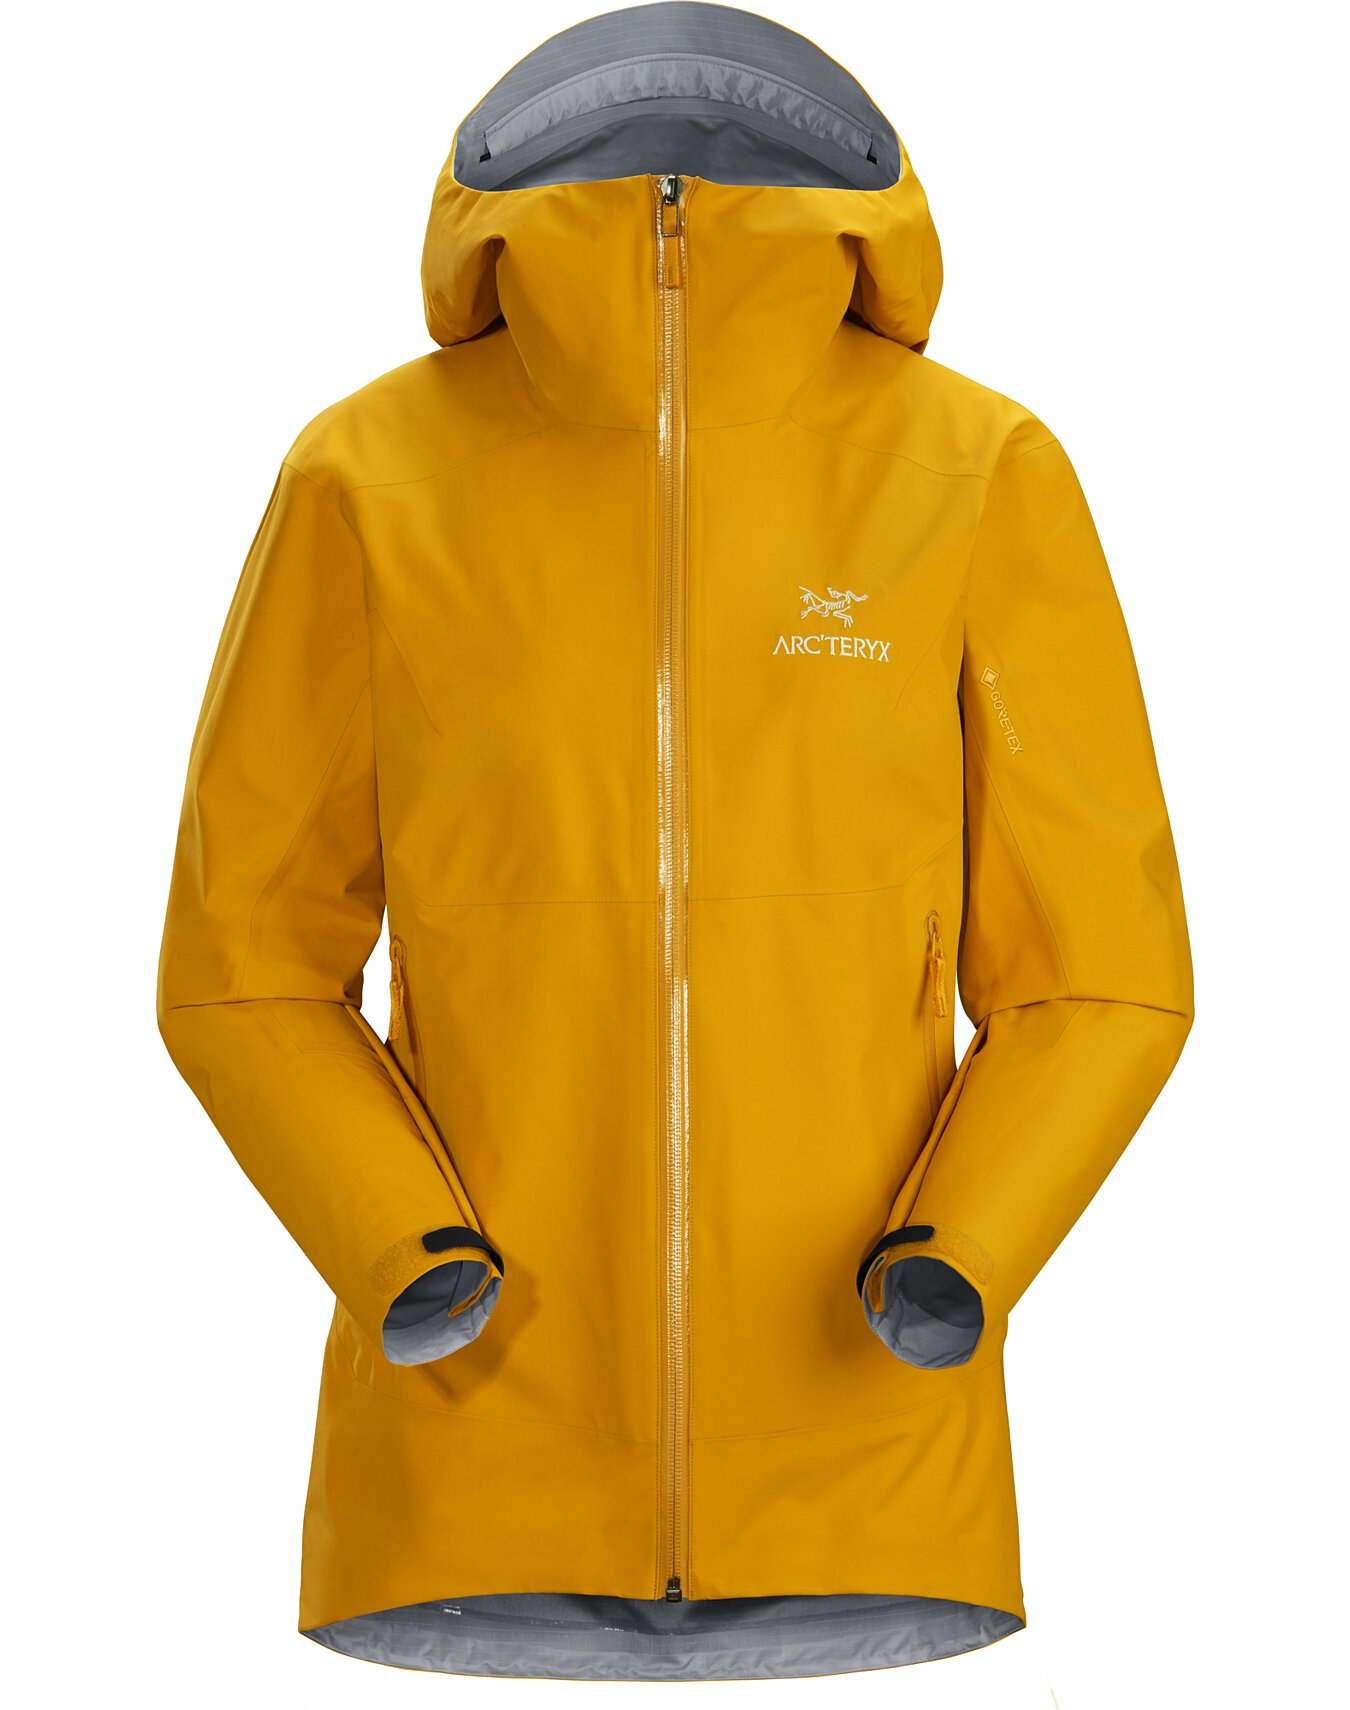 Stay Stylish This Winter with the Best Women Jackets Online from Paytm Mall